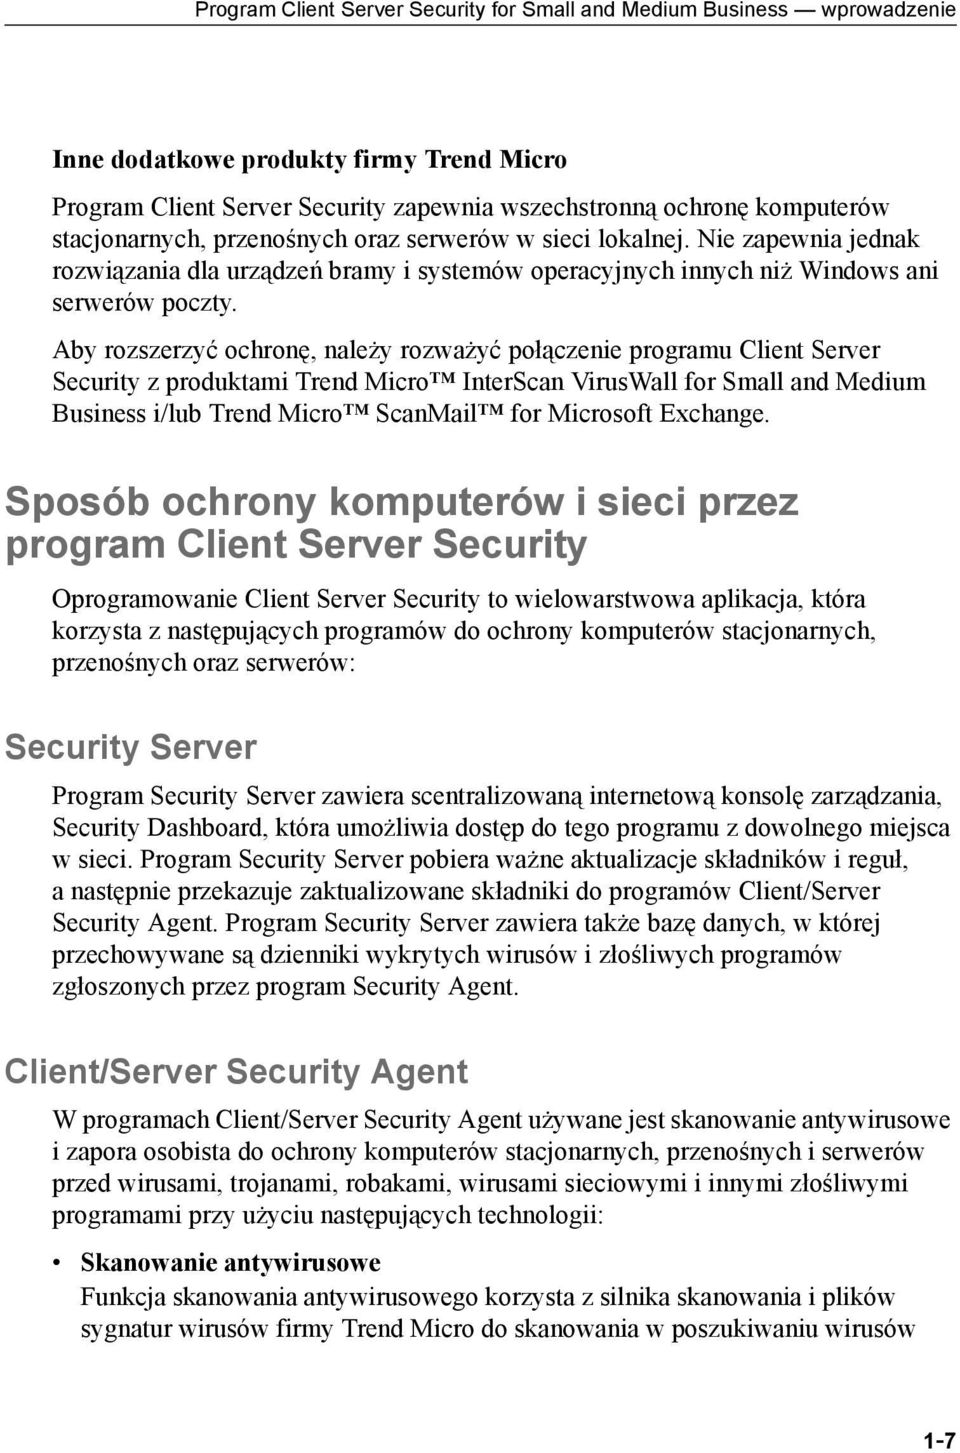 Aby rozszerzyć ochronę, należy rozważyć połączenie programu Client Server Security z produktami Trend Micro InterScan VirusWall for Small and Medium Business i/lub Trend Micro ScanMail for Microsoft